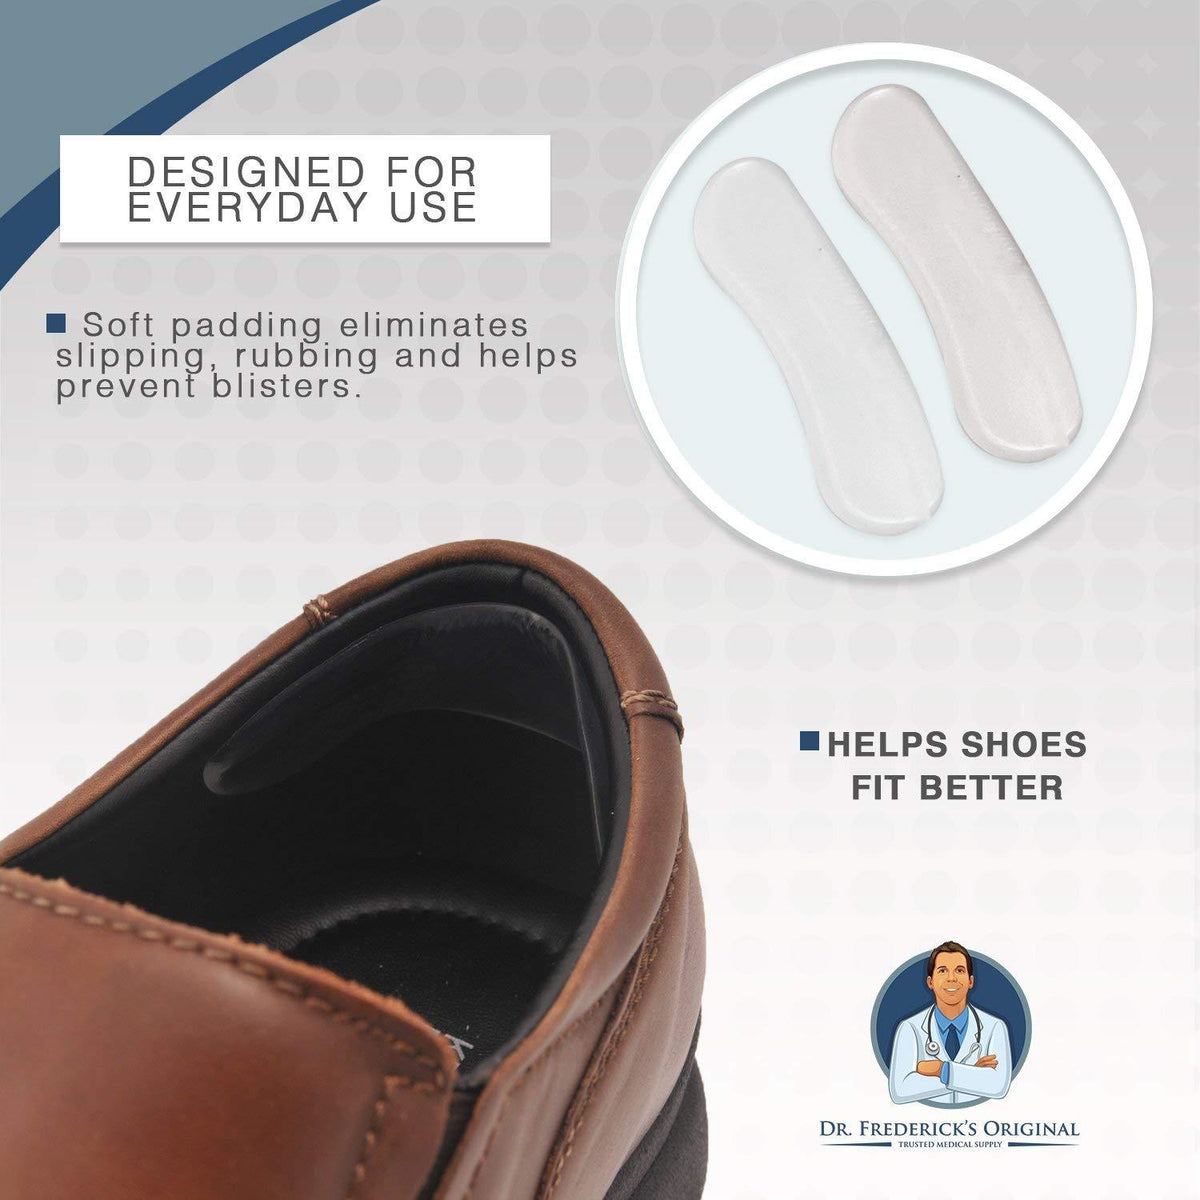 Dr. Frederick's Original Protective Flexible Heel Grip Set -- 10 Pieces - for Preventing Blisters & Cuts with Dress Shoes Foot Pain Dr. Frederick's Original